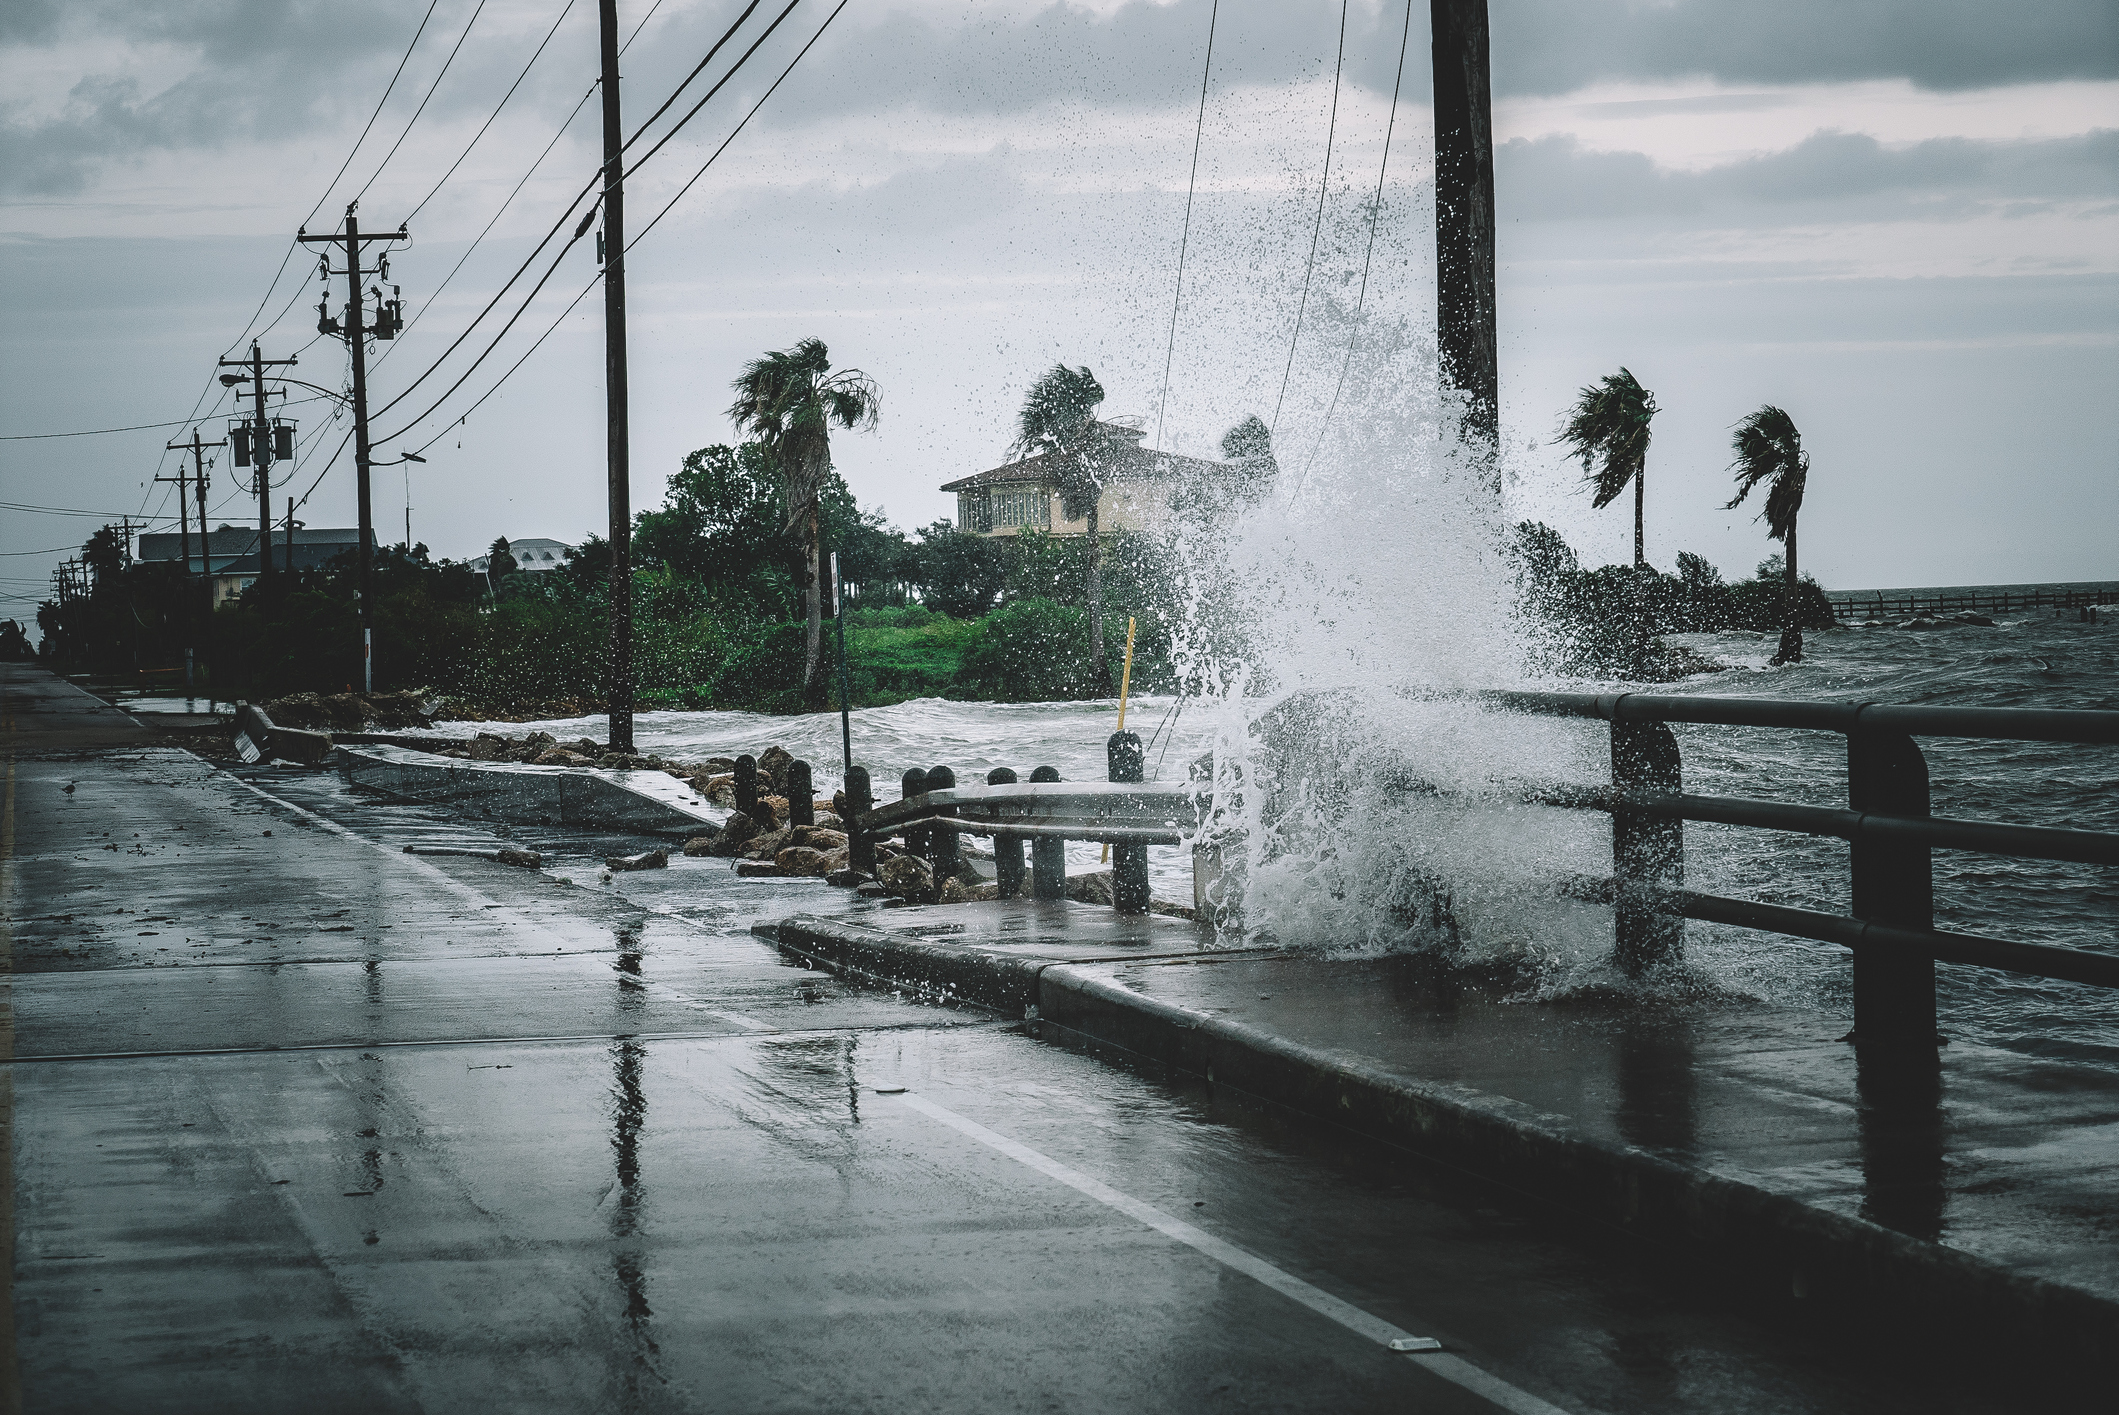 A wave crashes over a street railing during a hurricane in Texas